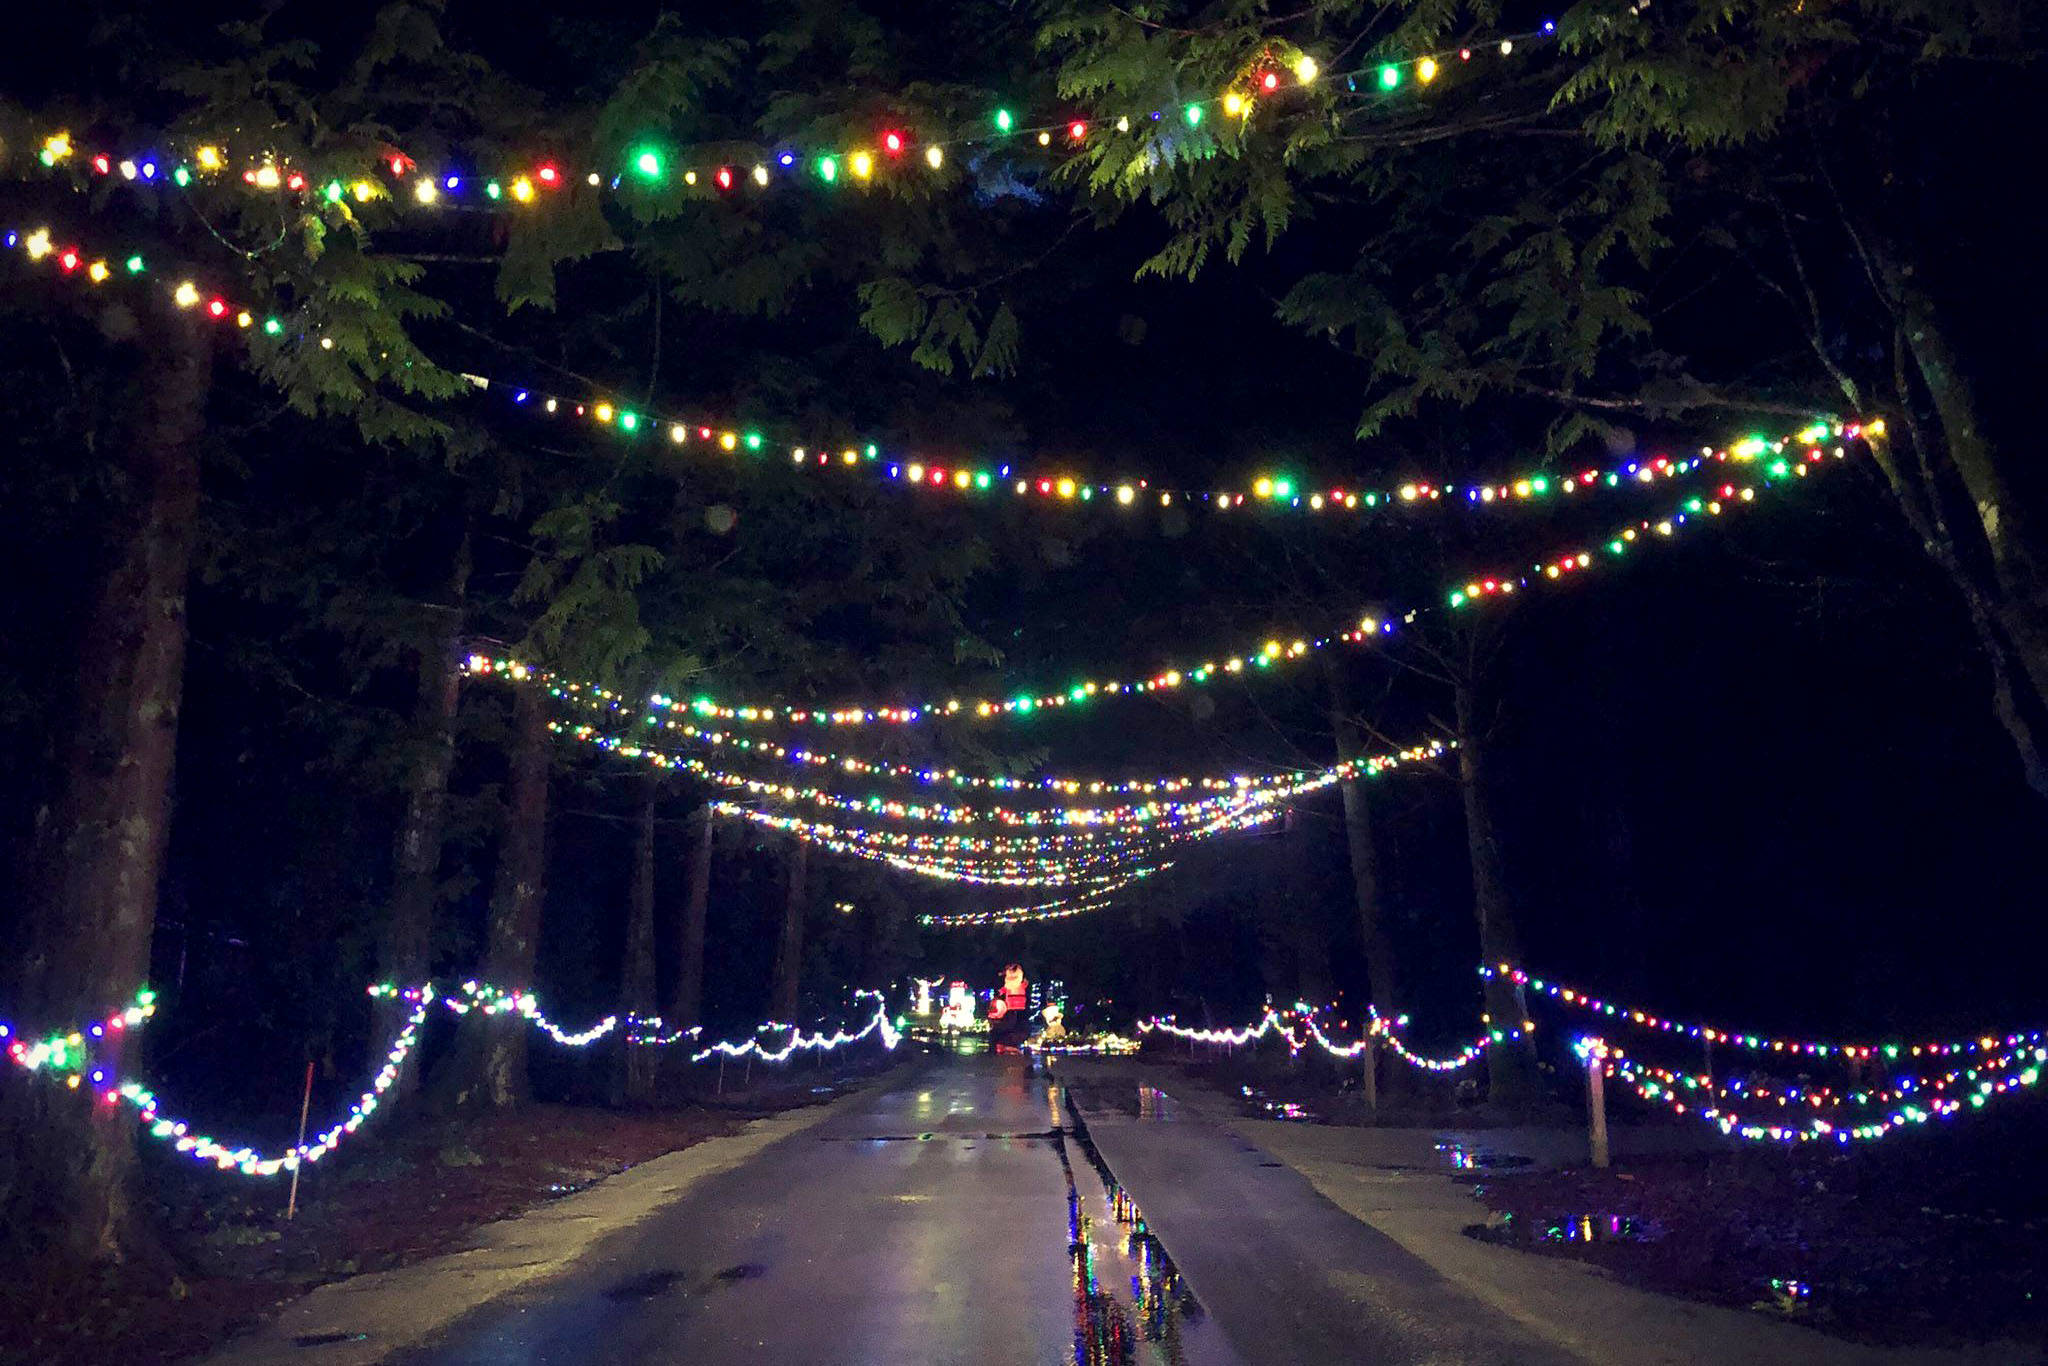 Williams Park Christmas Lights